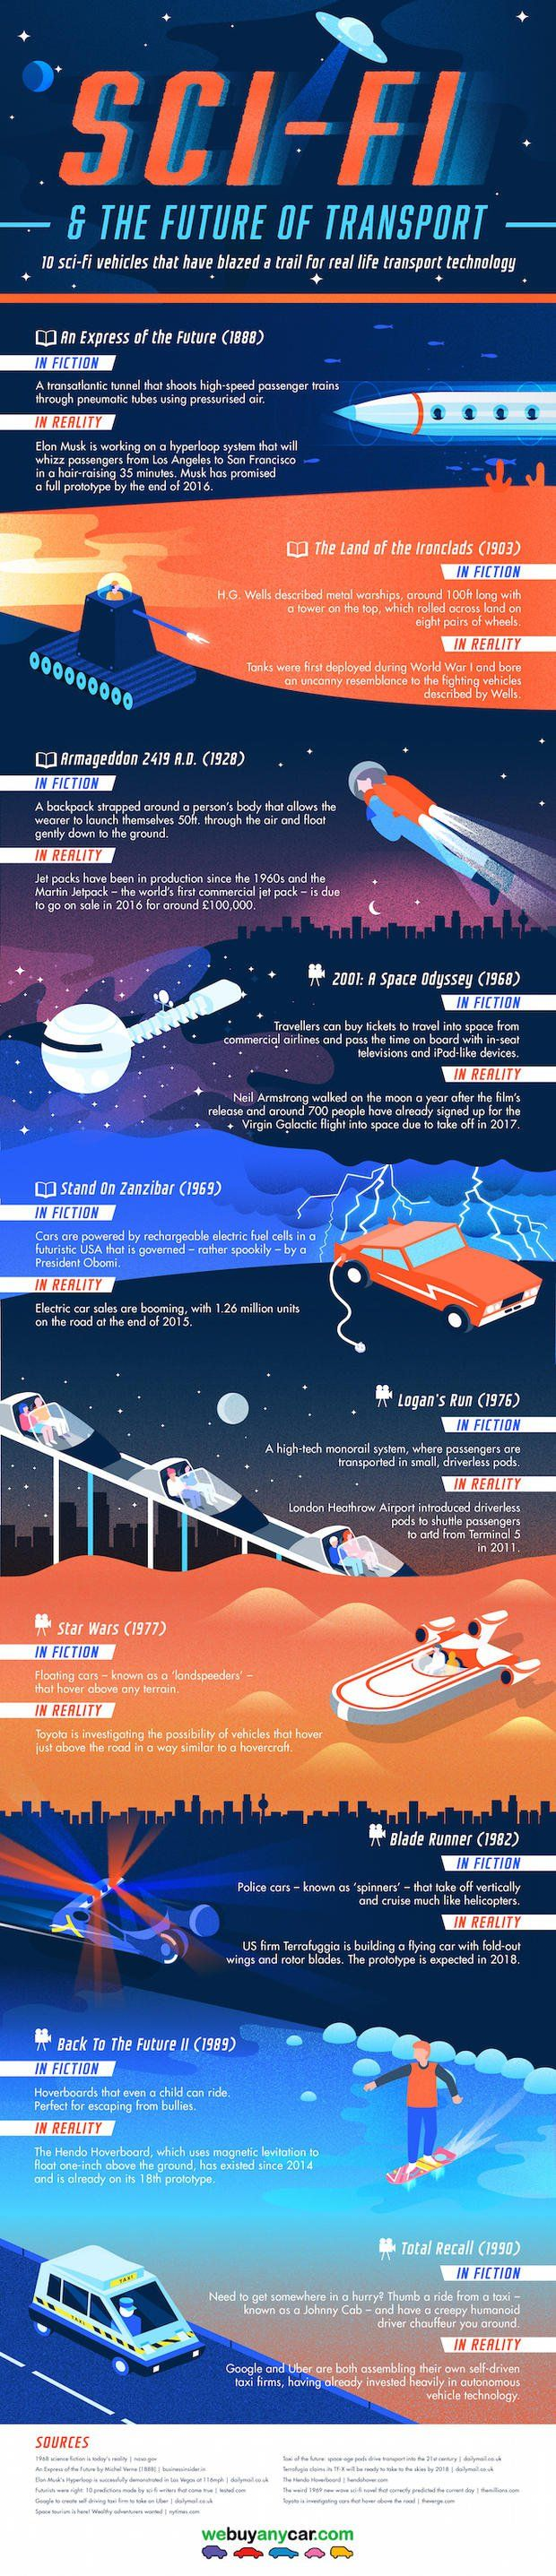 Infographic: 10 Times Science Fiction Predicted Modern Transport Technology With Eerie Accuracy